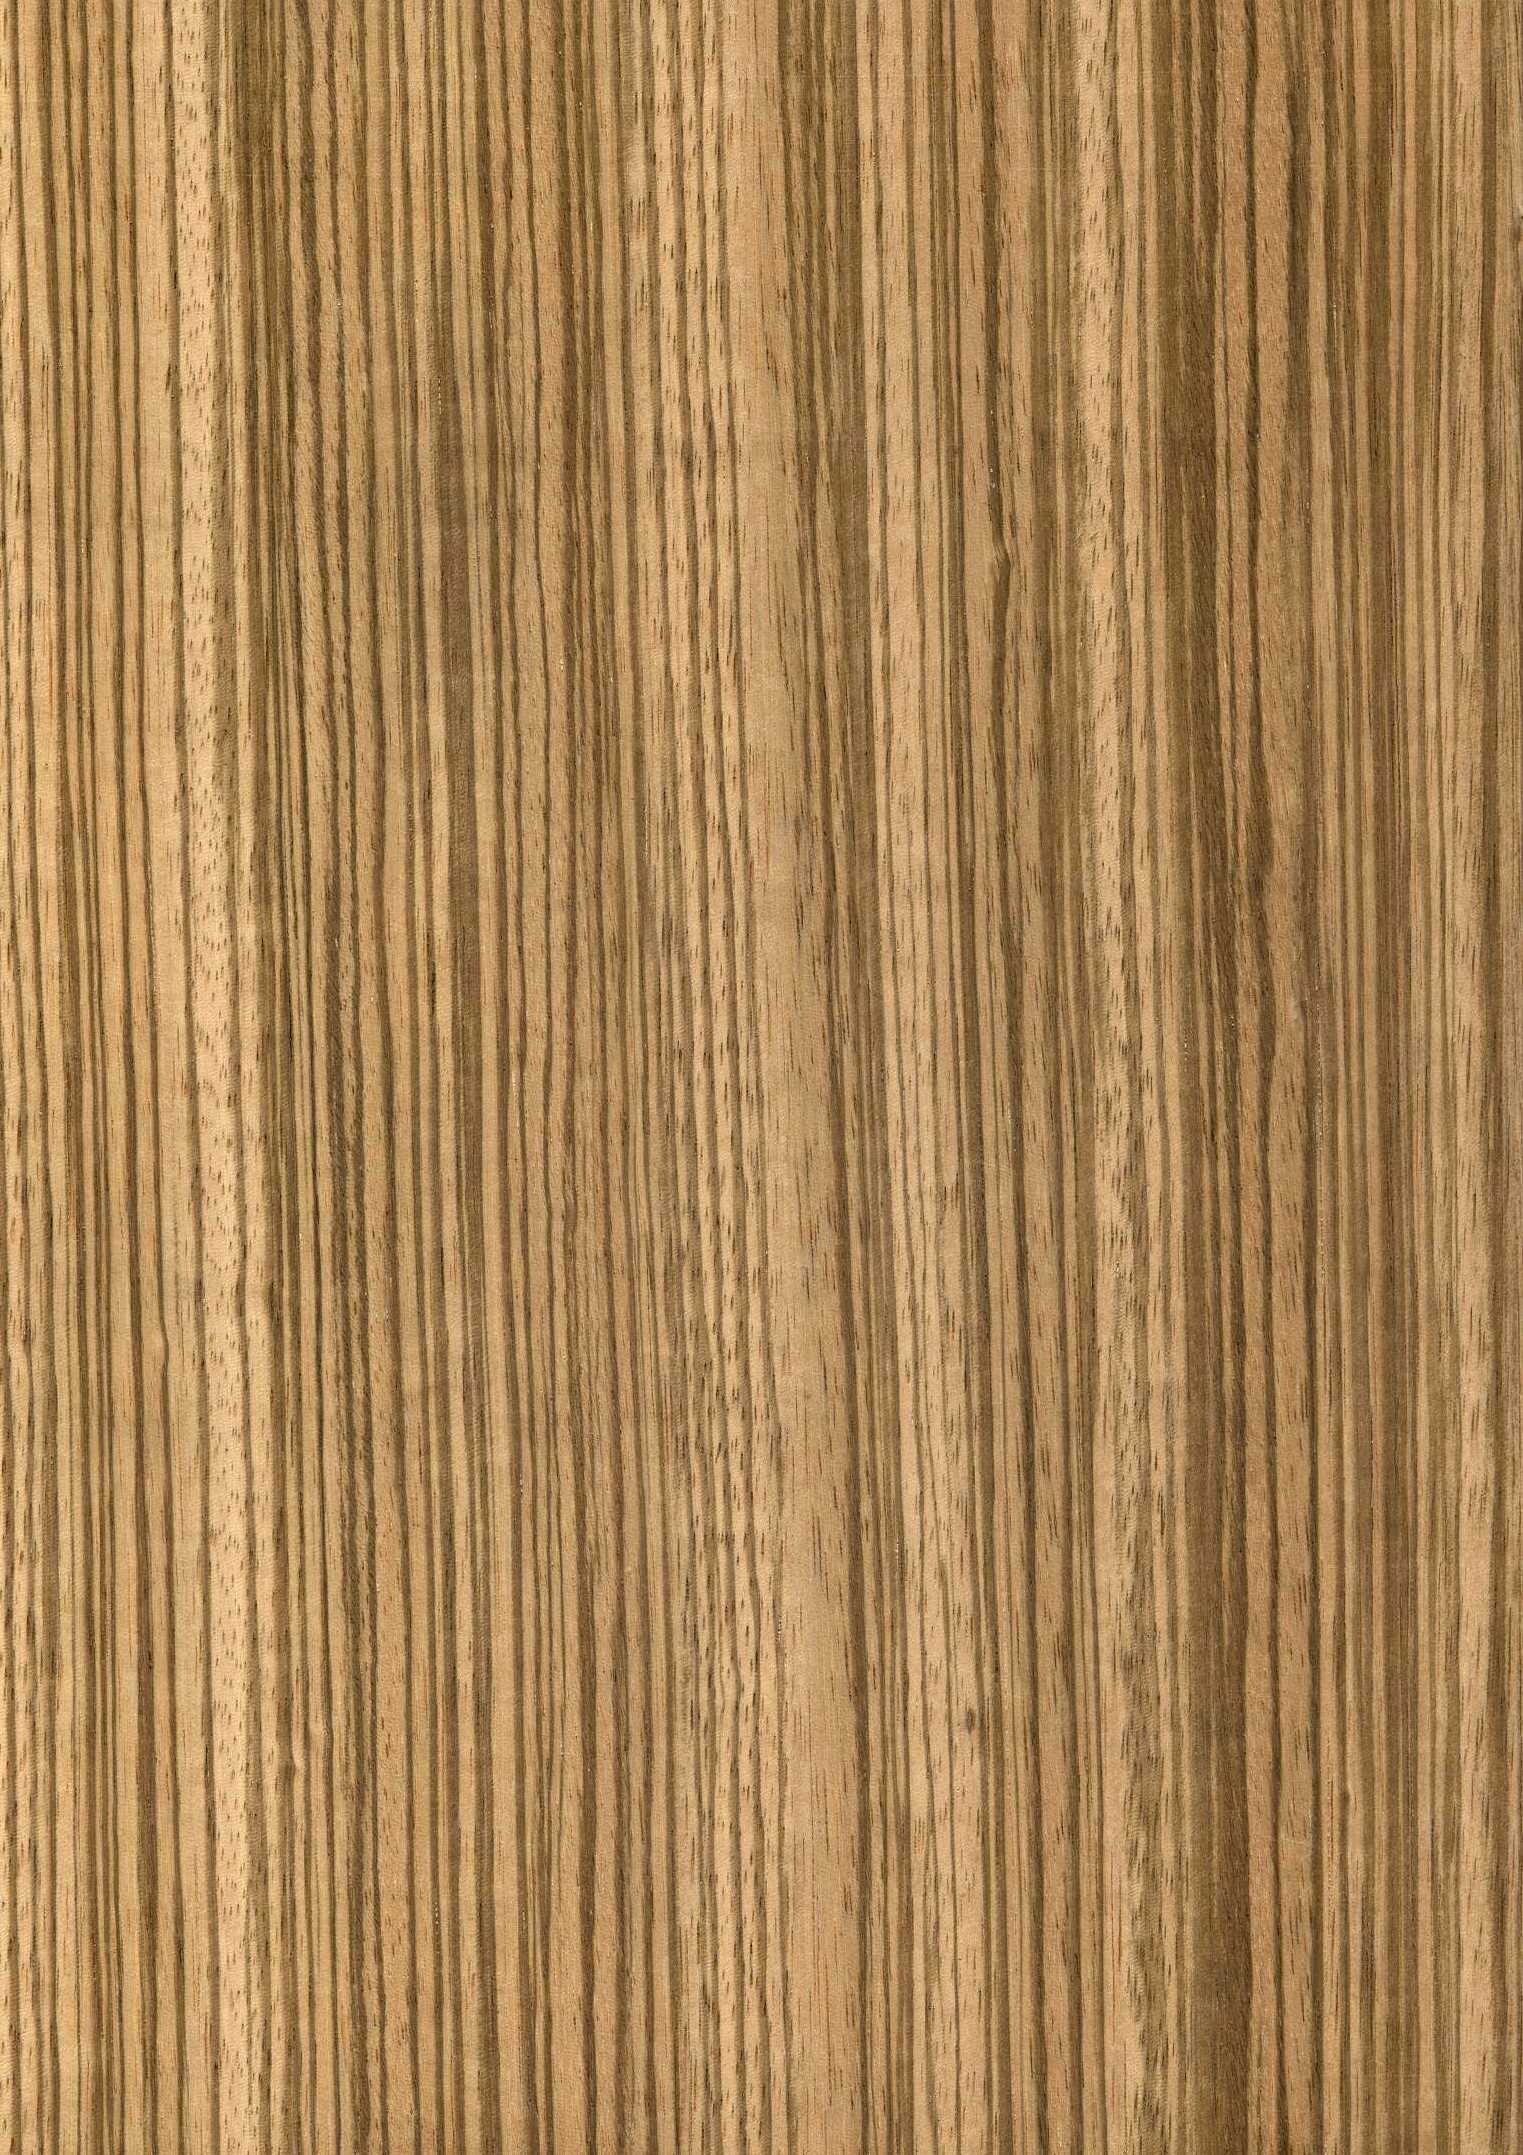 Material Design Wallpaper Iphone X Barn Wood Background 183 ① Download Free Awesome Backgrounds